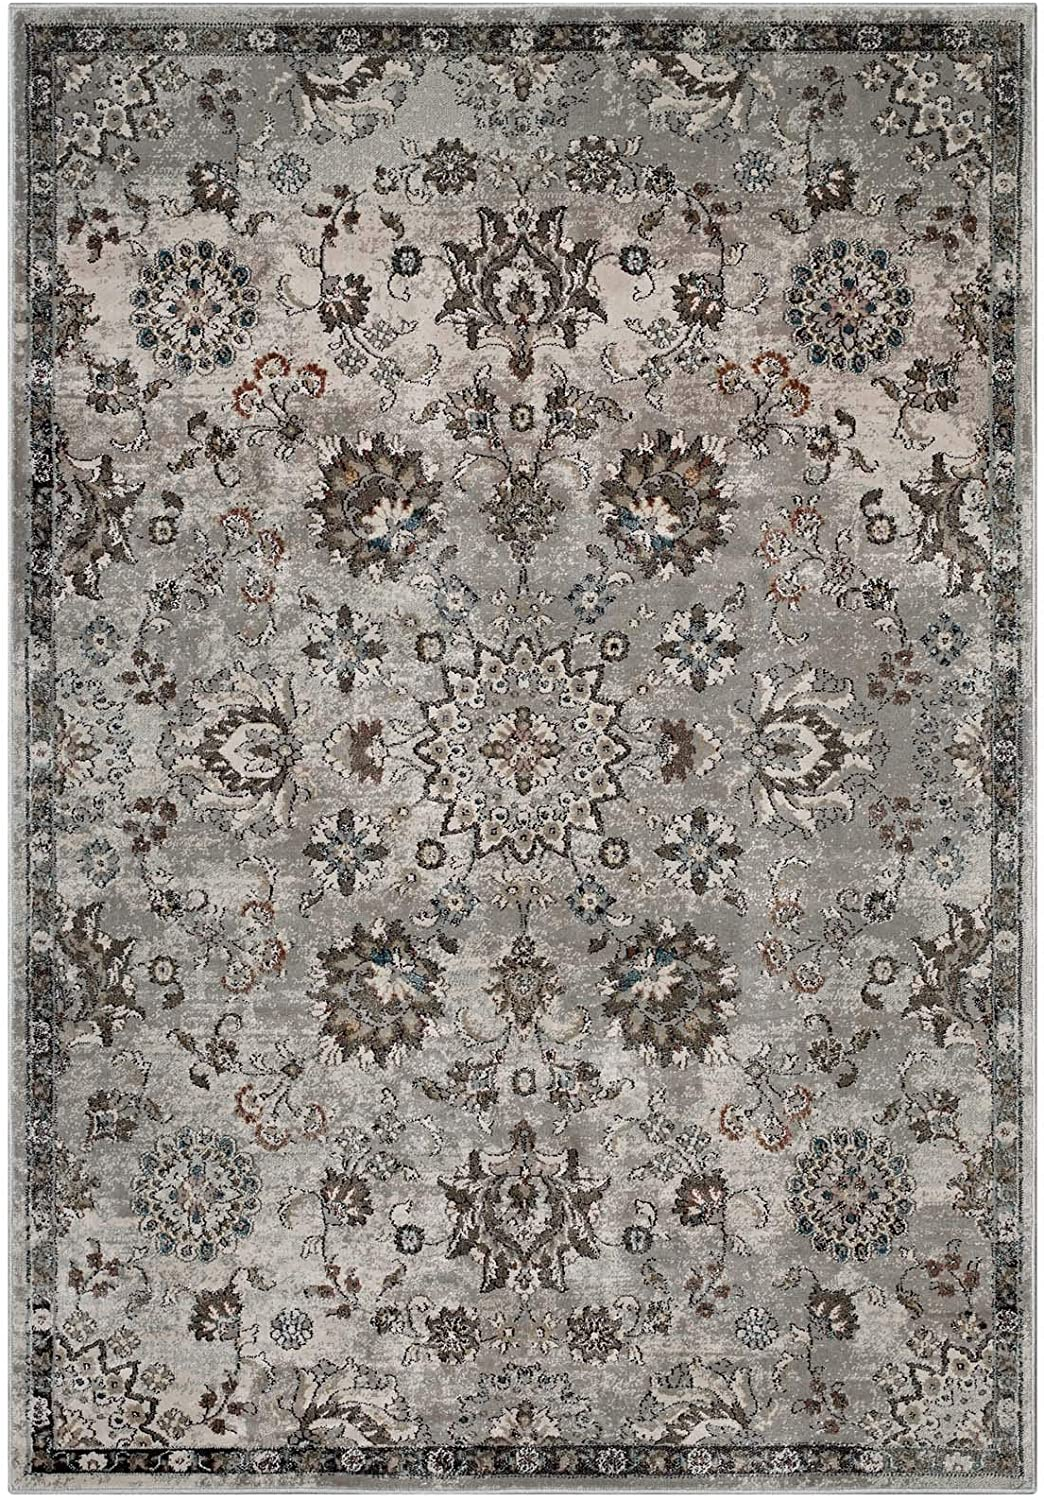 Modway Max 55% OFF Hana Distressed Vintage Indefinitely Floral Lattice Rug Si Area In 5x8